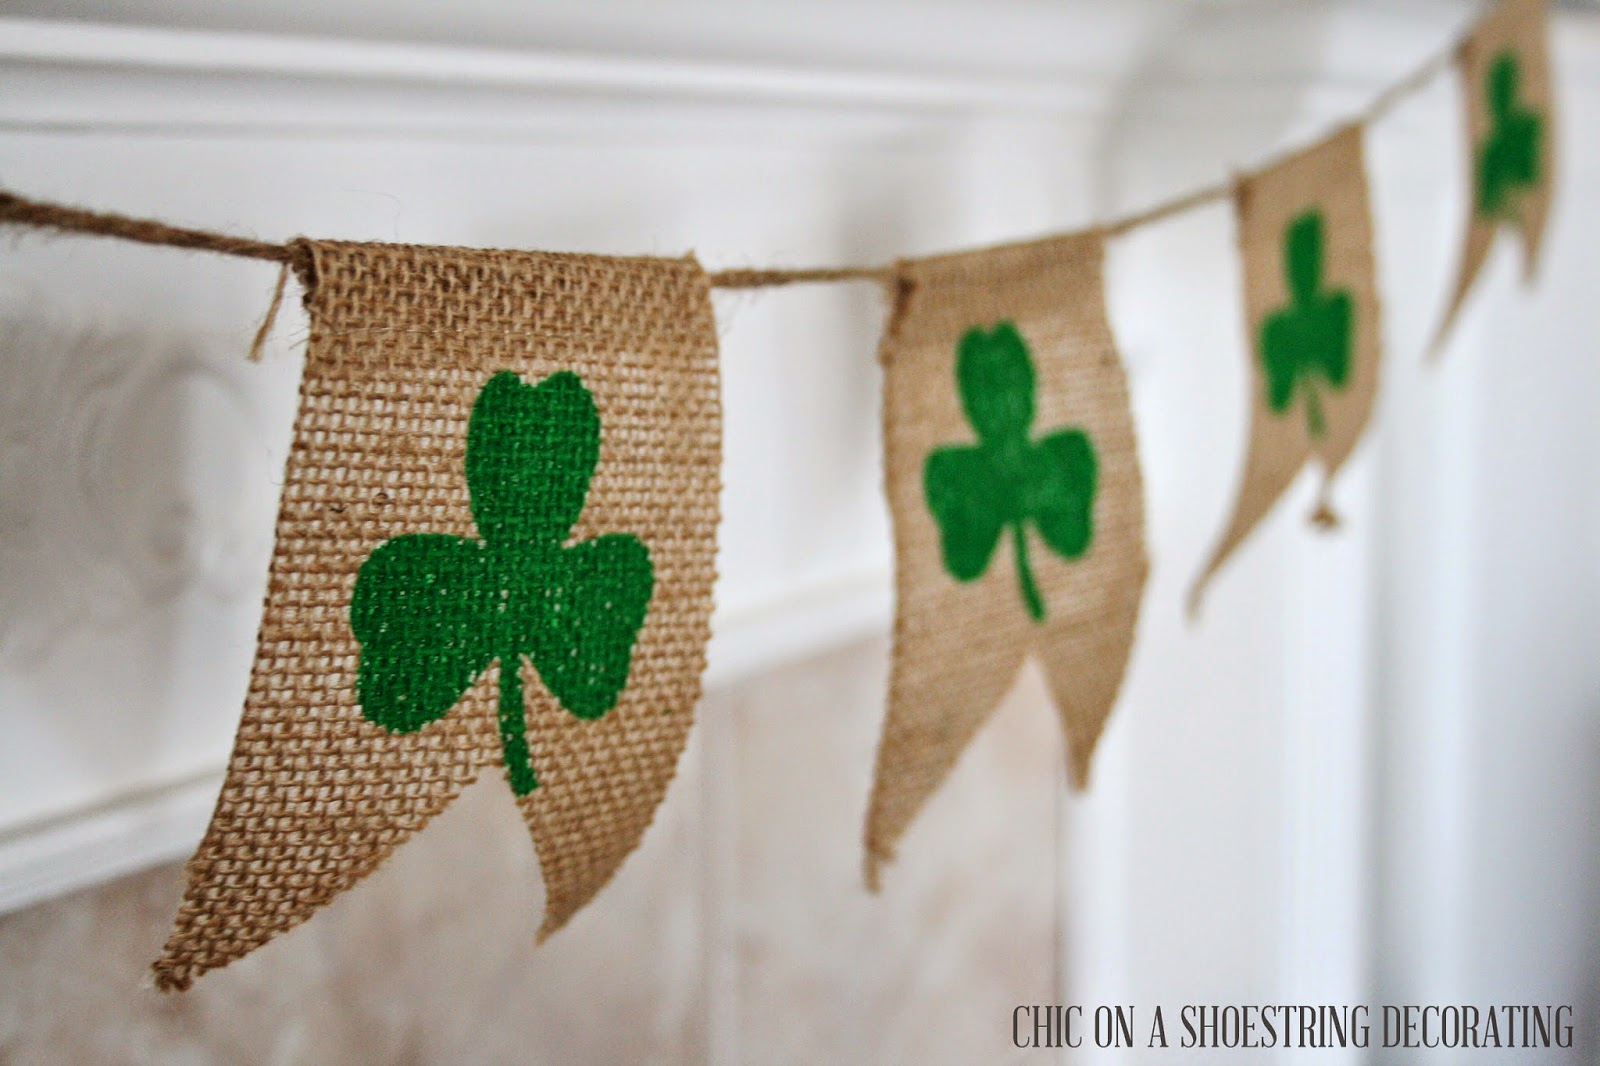 Chic on a shoestring decorating easy st patrick 39 s day decor for St patricks day decorations for the home